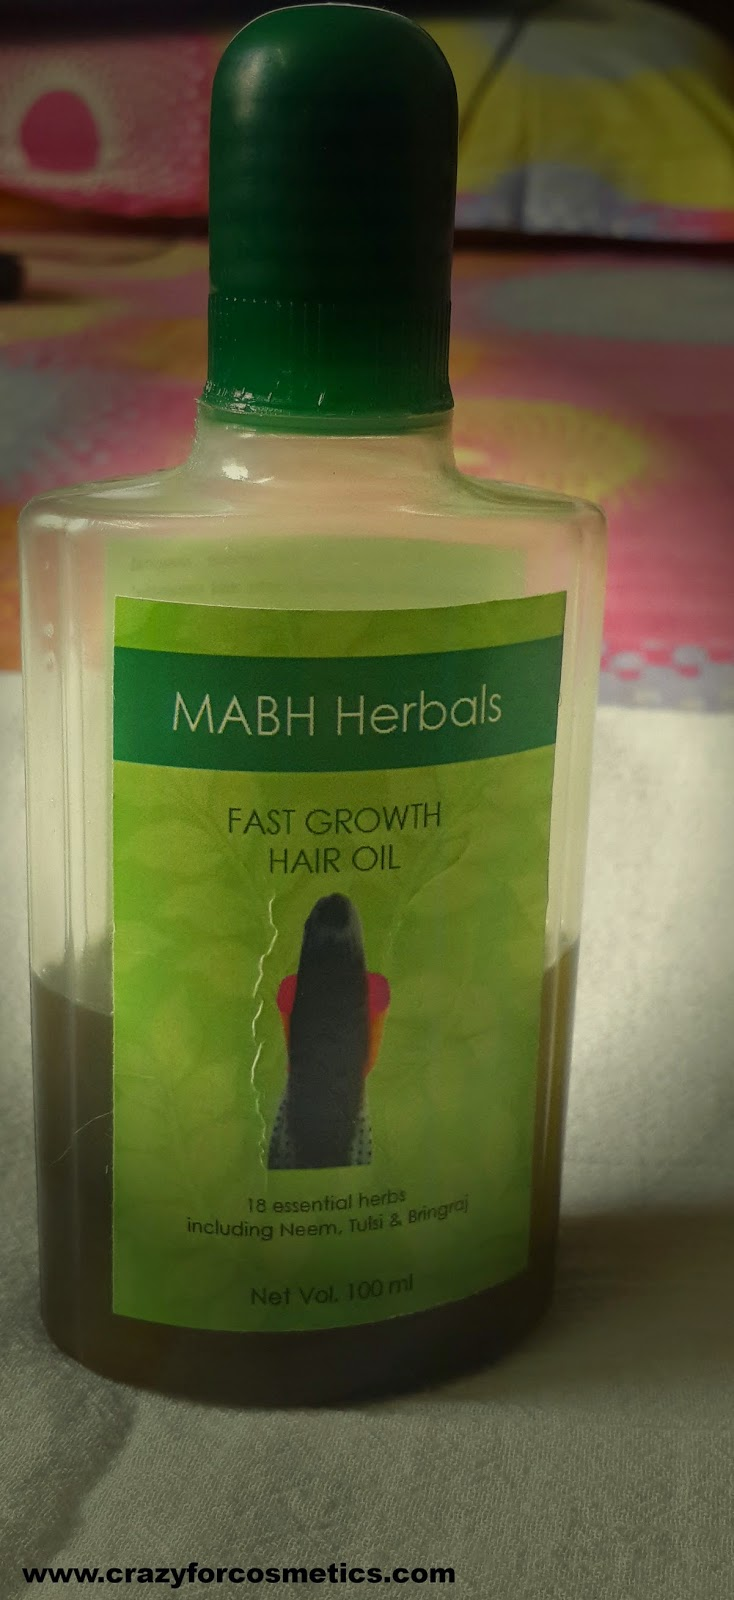 MABH hair oil review- MABh oils review- MABh hair oil buy online - MABh herbals- MABh oil Chennai- MABH Lancy- MABH fast growth hair oil review